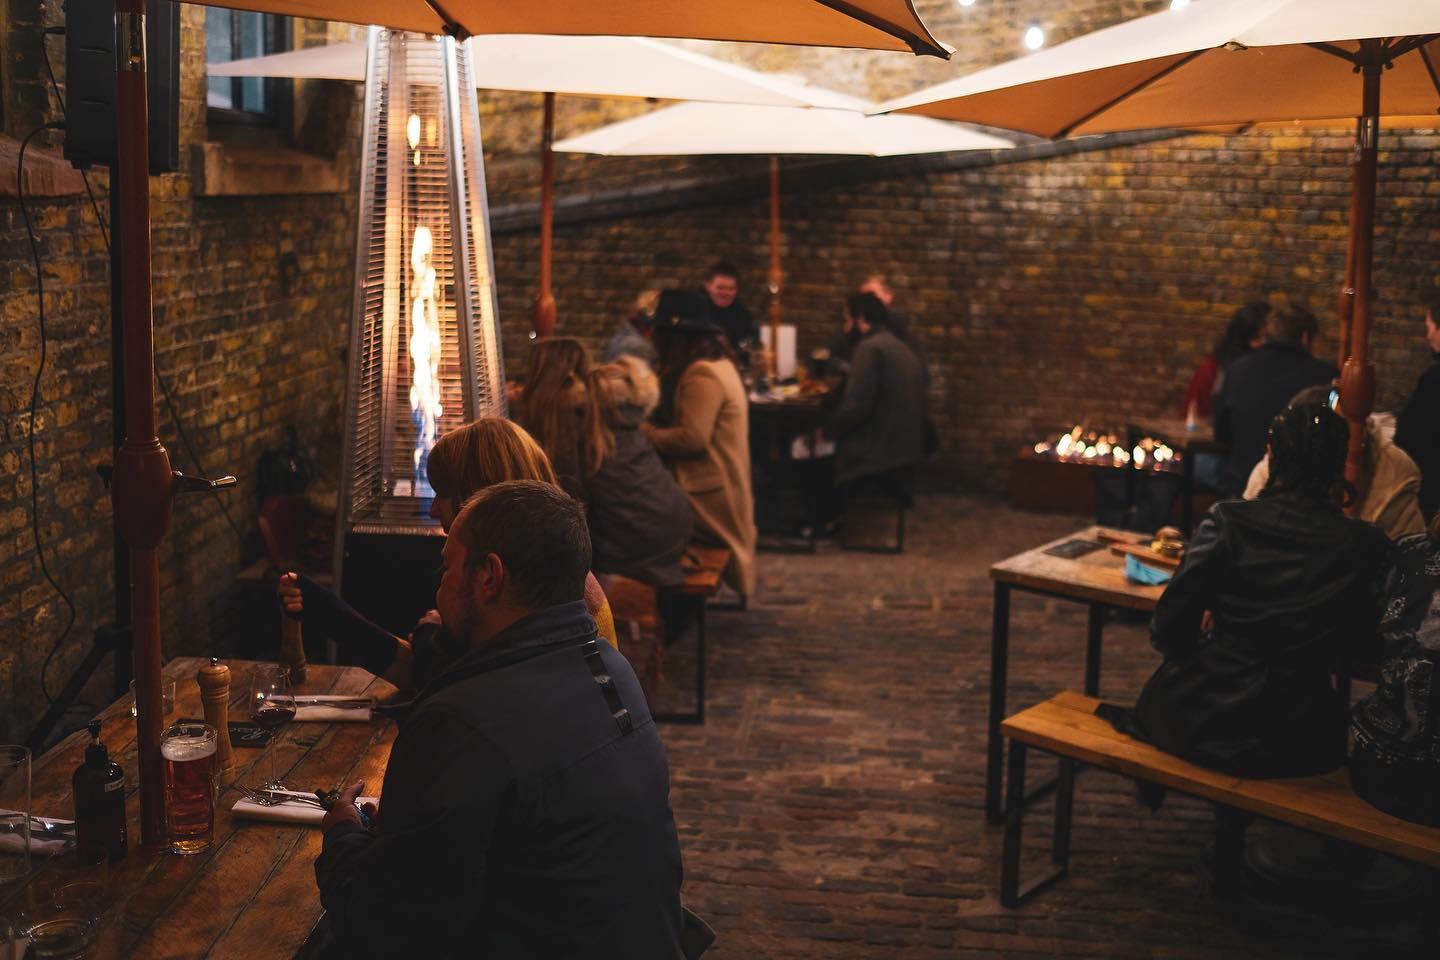 Heaters, parasols and pints. What more could a pub need?   We're fully booked for the weekend but have a little bit of space tomorrow & Thursday.   Head to our website to book. Link in bio!